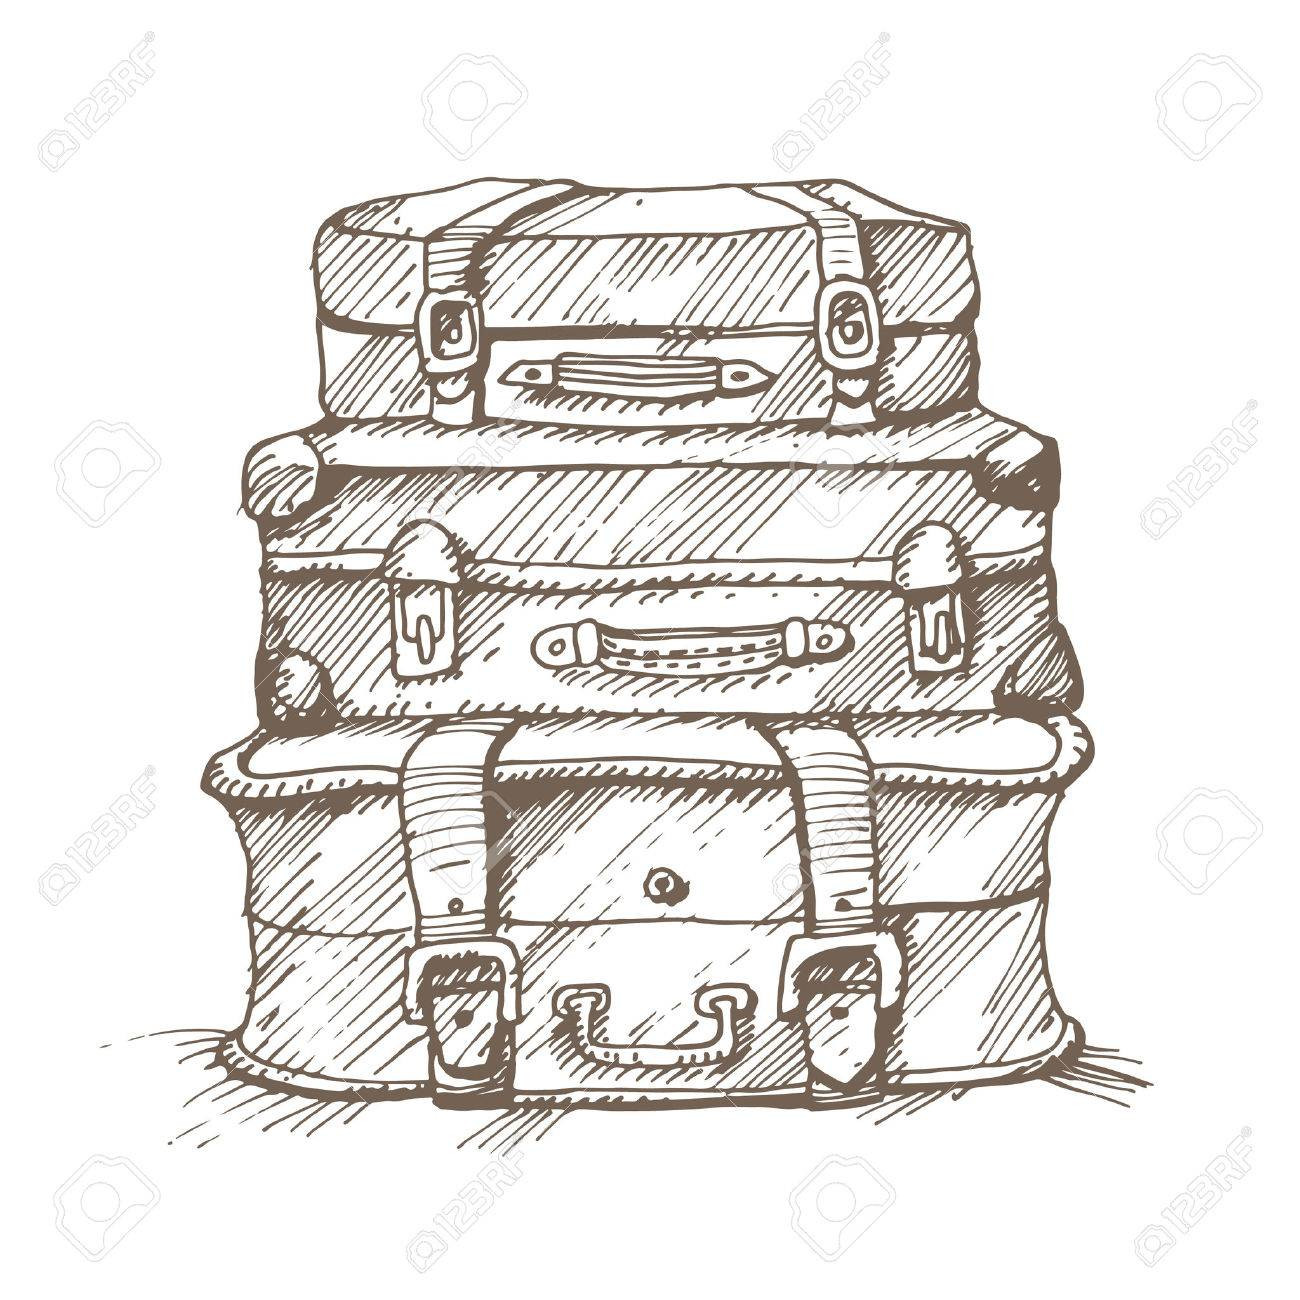 Hand drawn illustration of a stack of suitcases. - 30596610